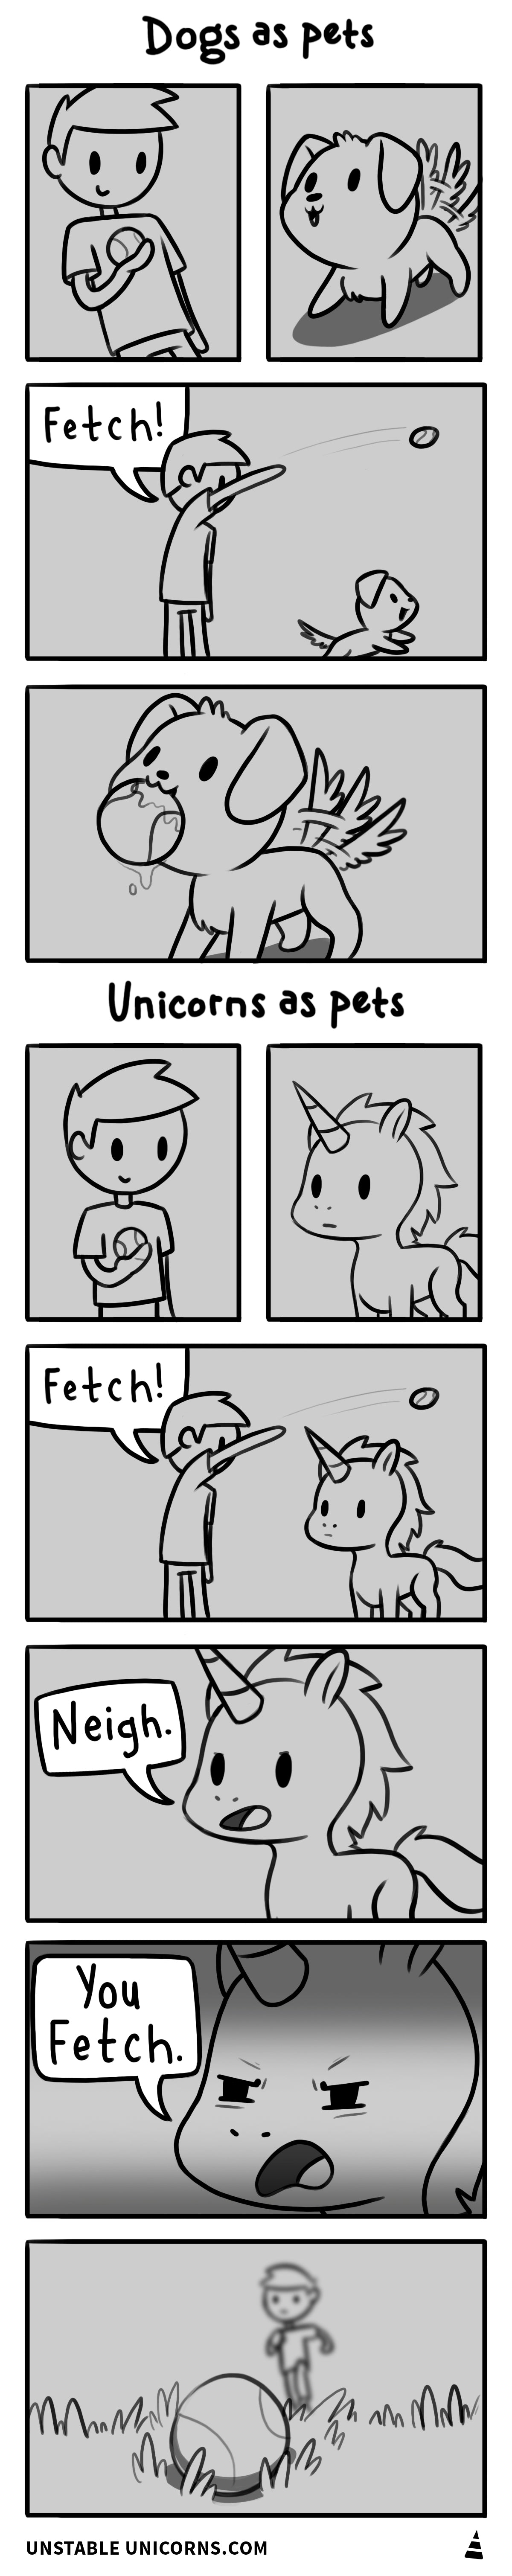 Dogs vs Unicorns